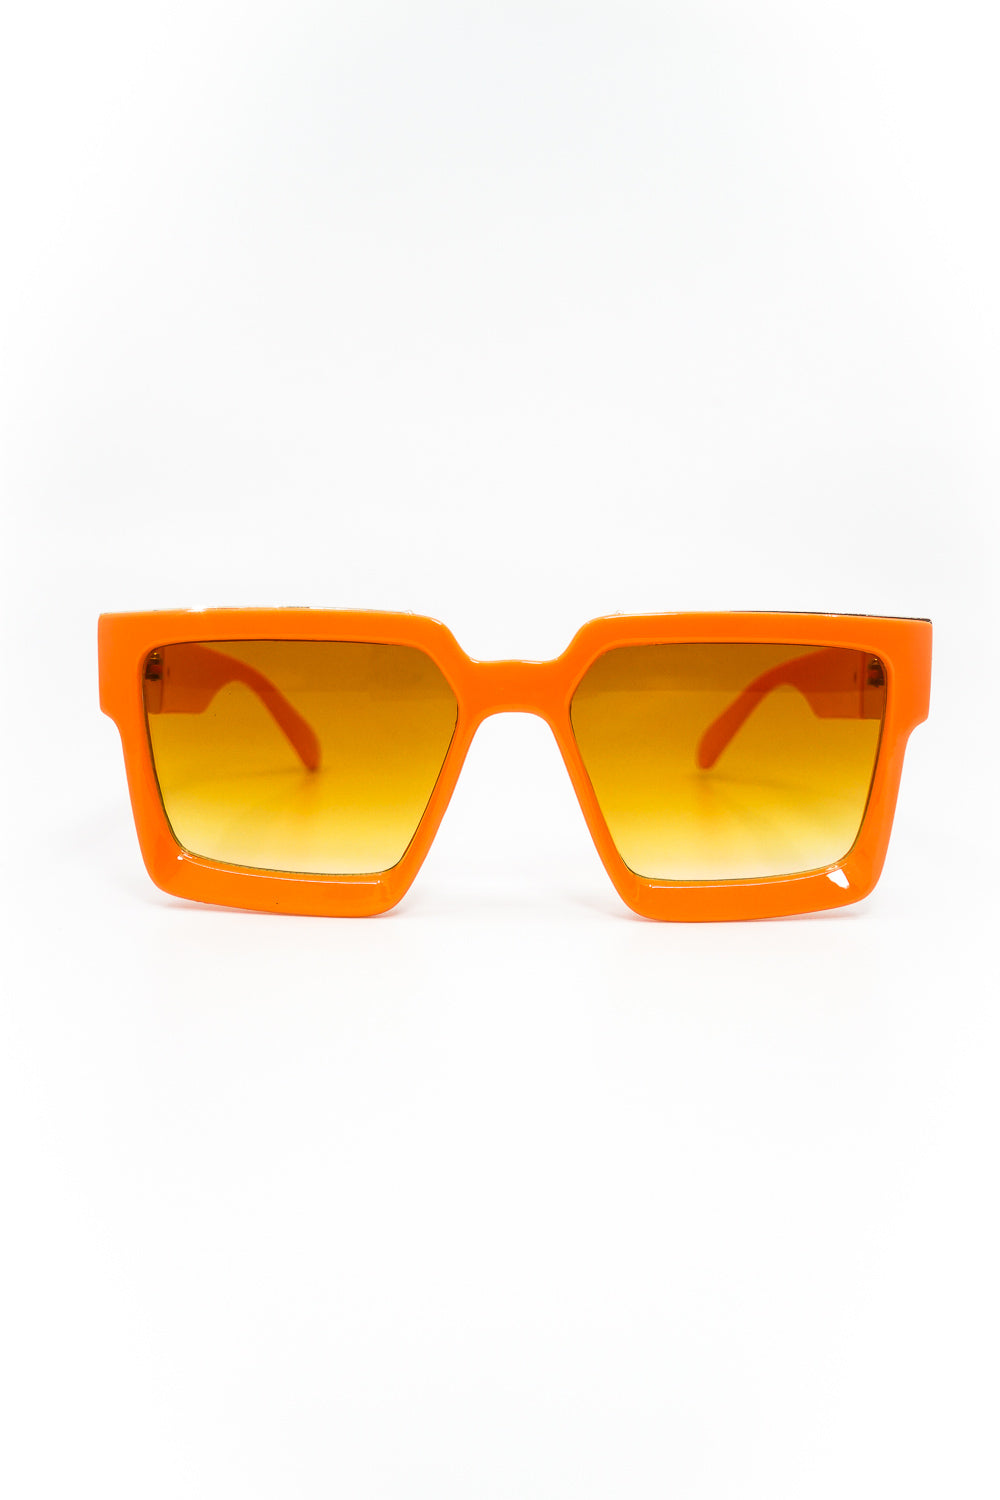 Seasons Hottest Thickened Square Frame Sunglasses in Orange - Fashion House USA